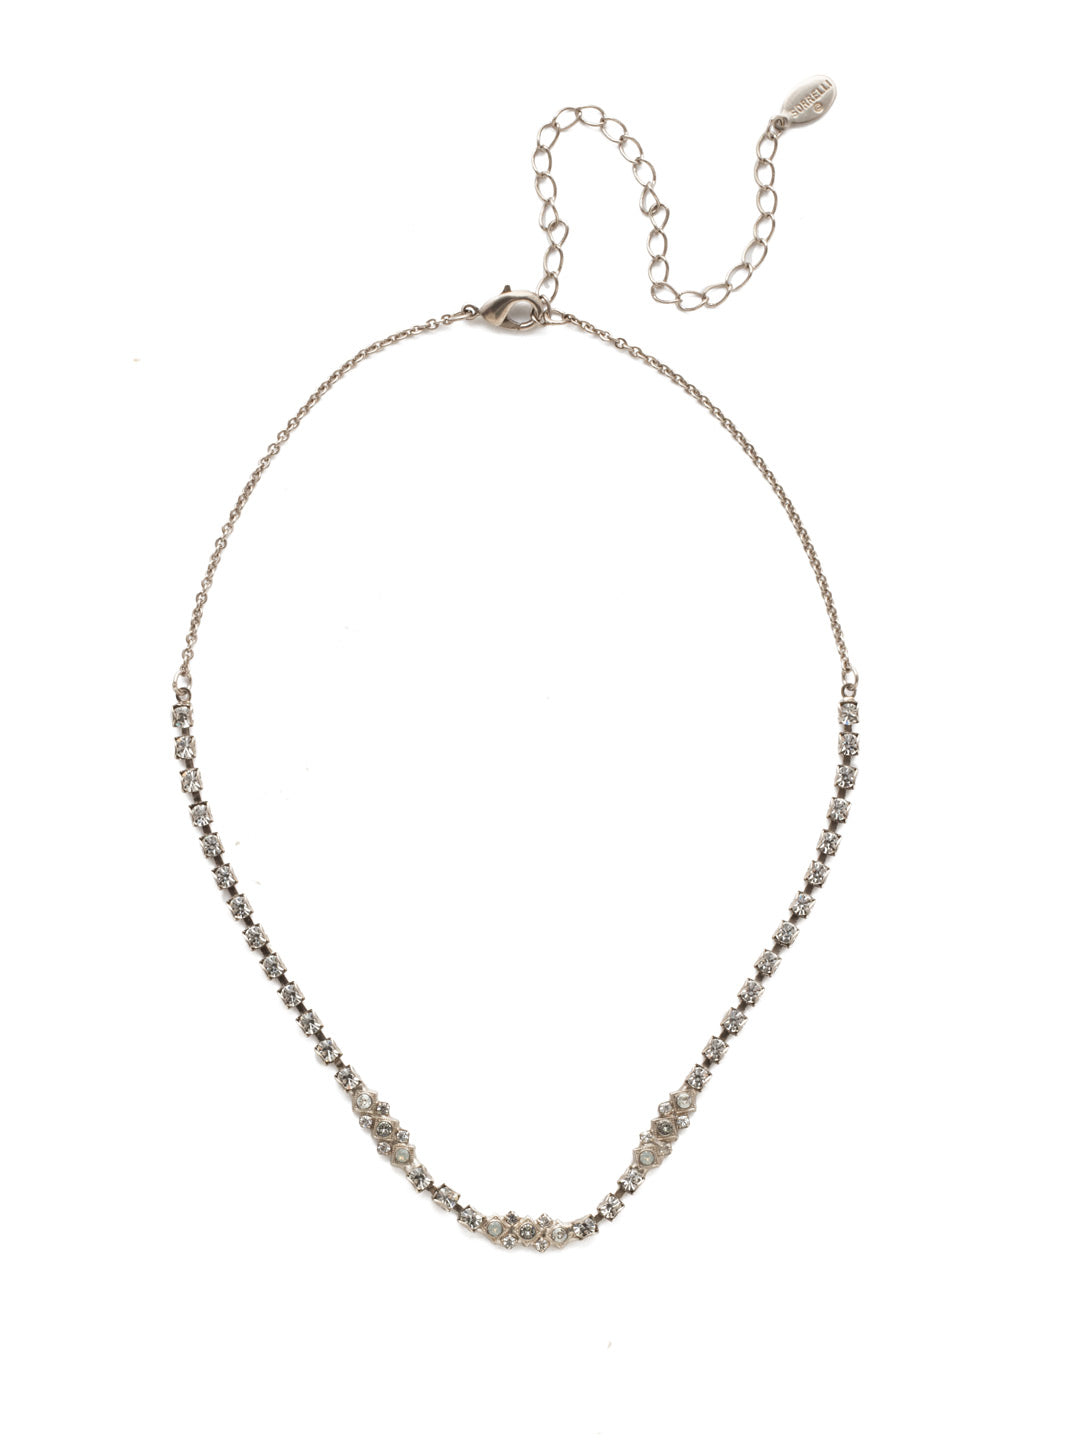 Jacqueline Tennis Necklace - NEN5ASSTC